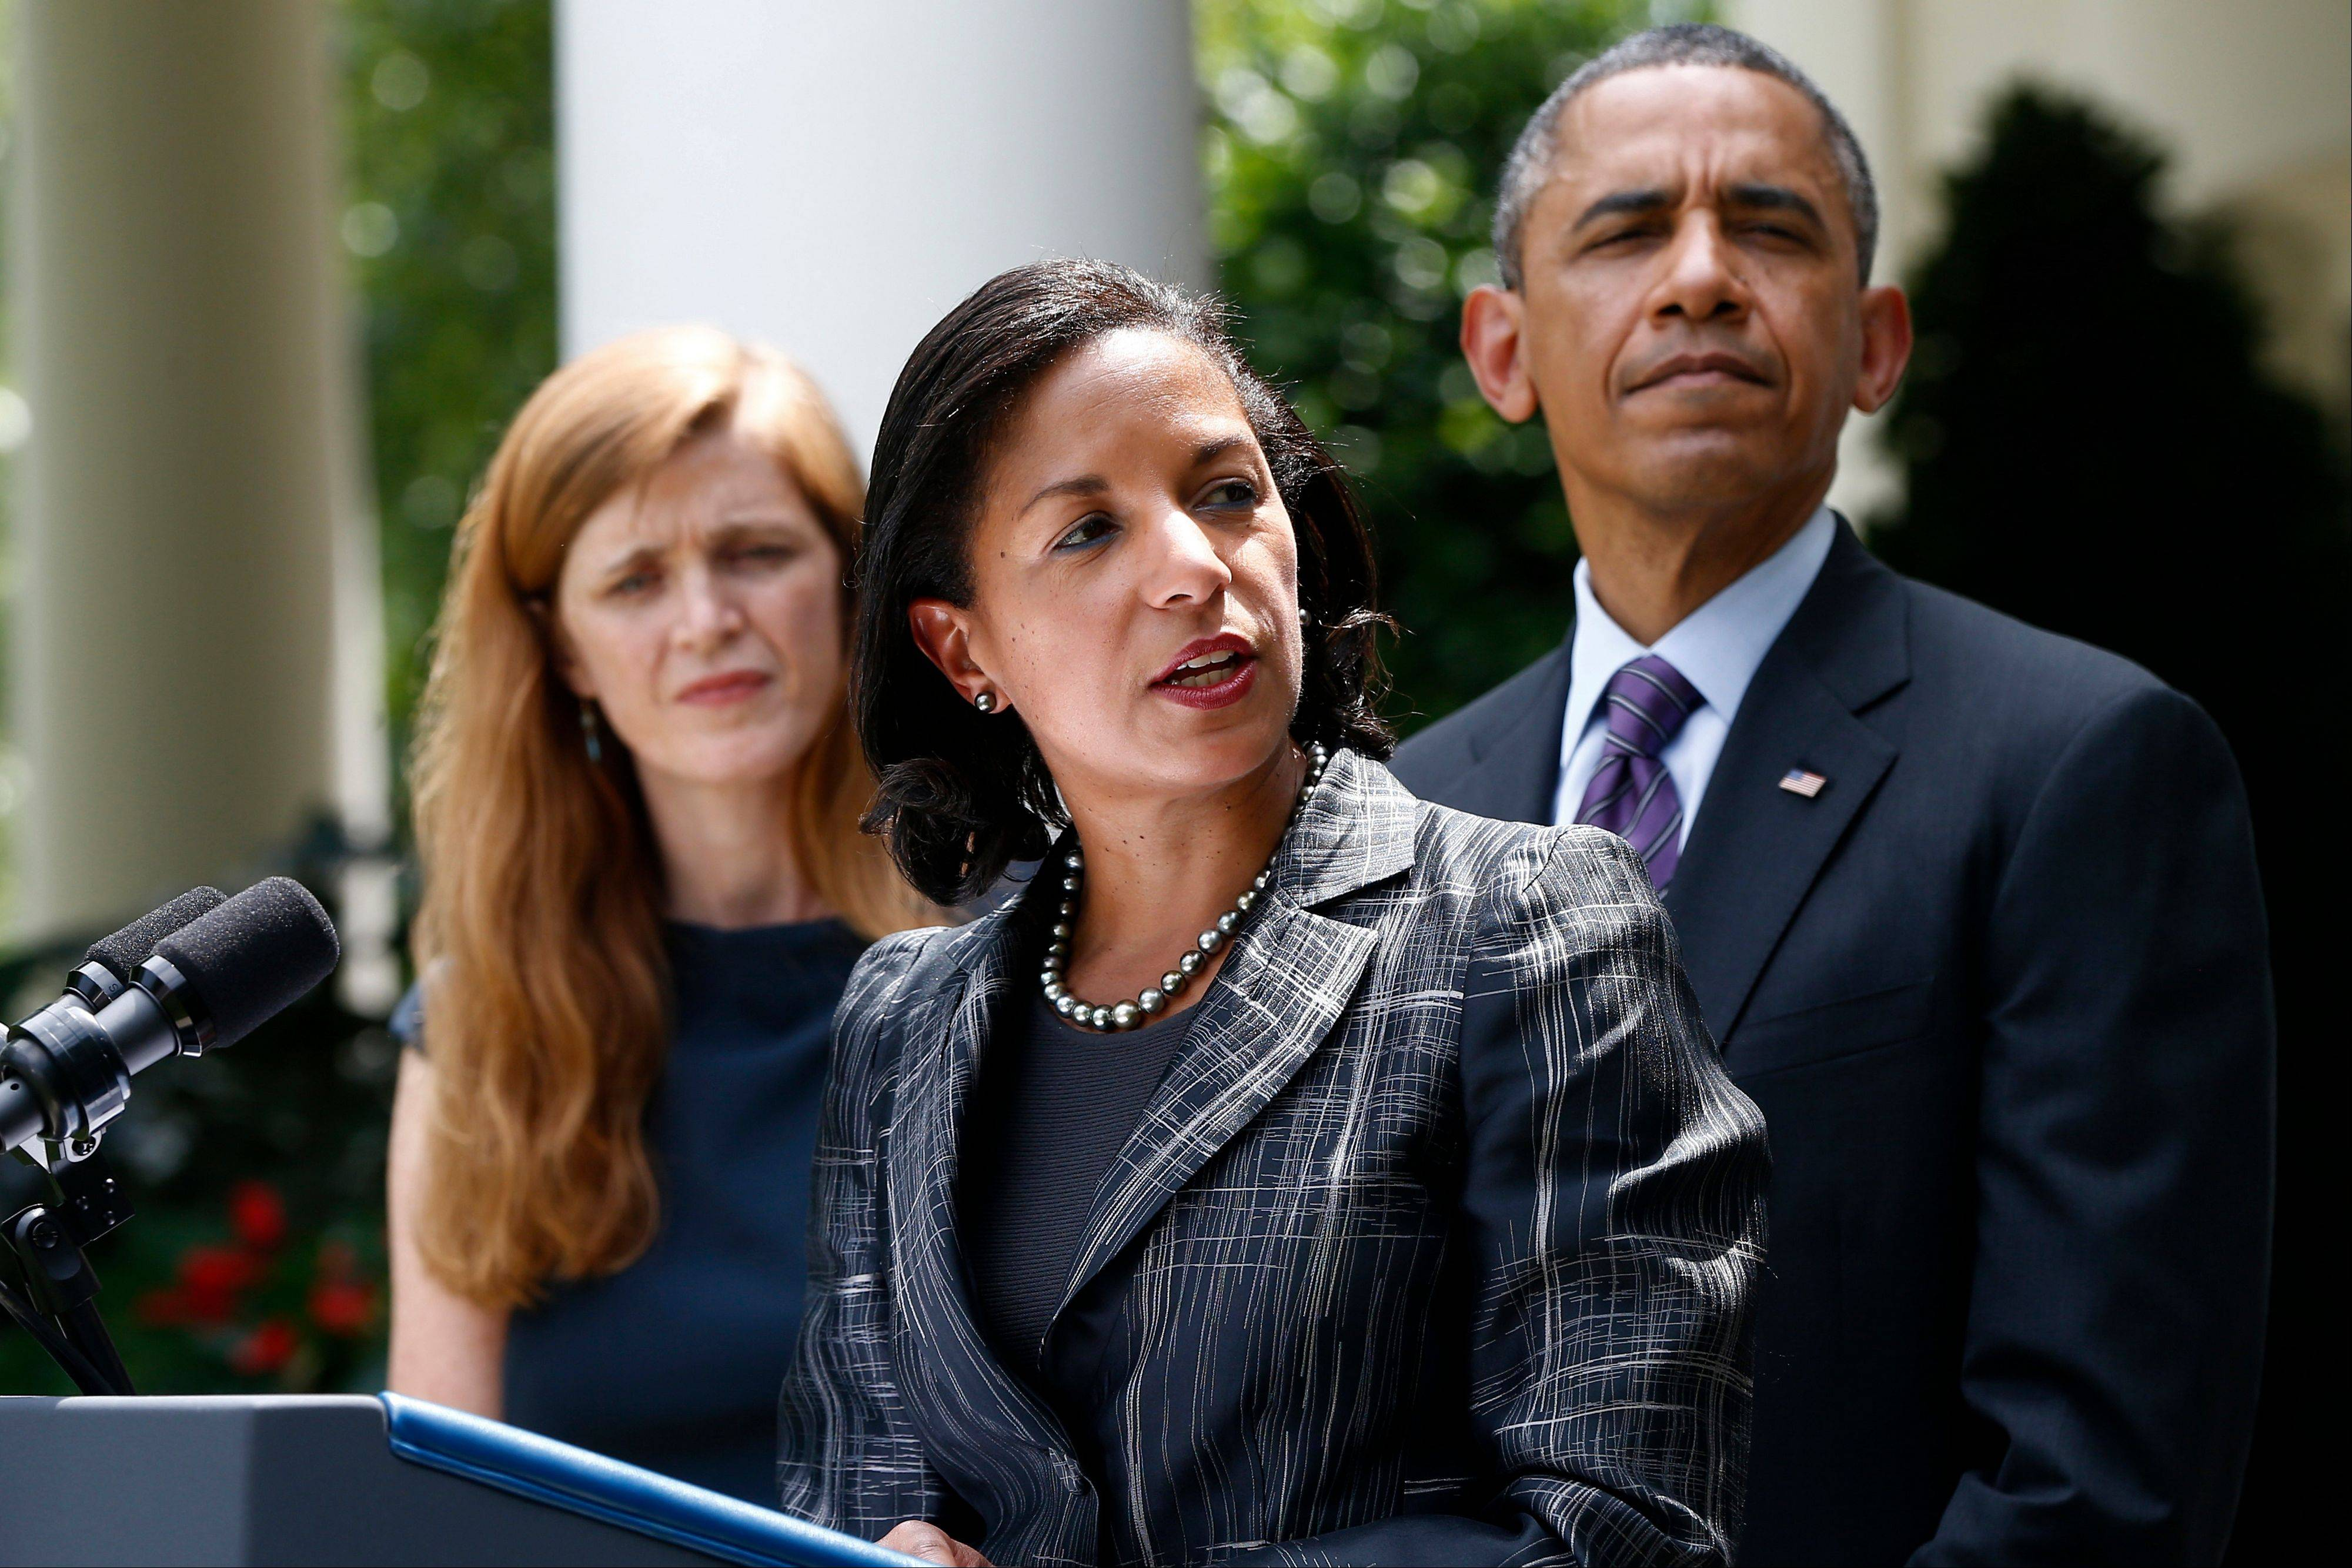 President Barack Obama listens as U.N. Ambassador Susan Rice, his choice to be his next National Security Adviser, speaks at the White House Wednesday, when the president made the announcement. Samantha Power, his nominee to be the next U.N. ambassador is at left.